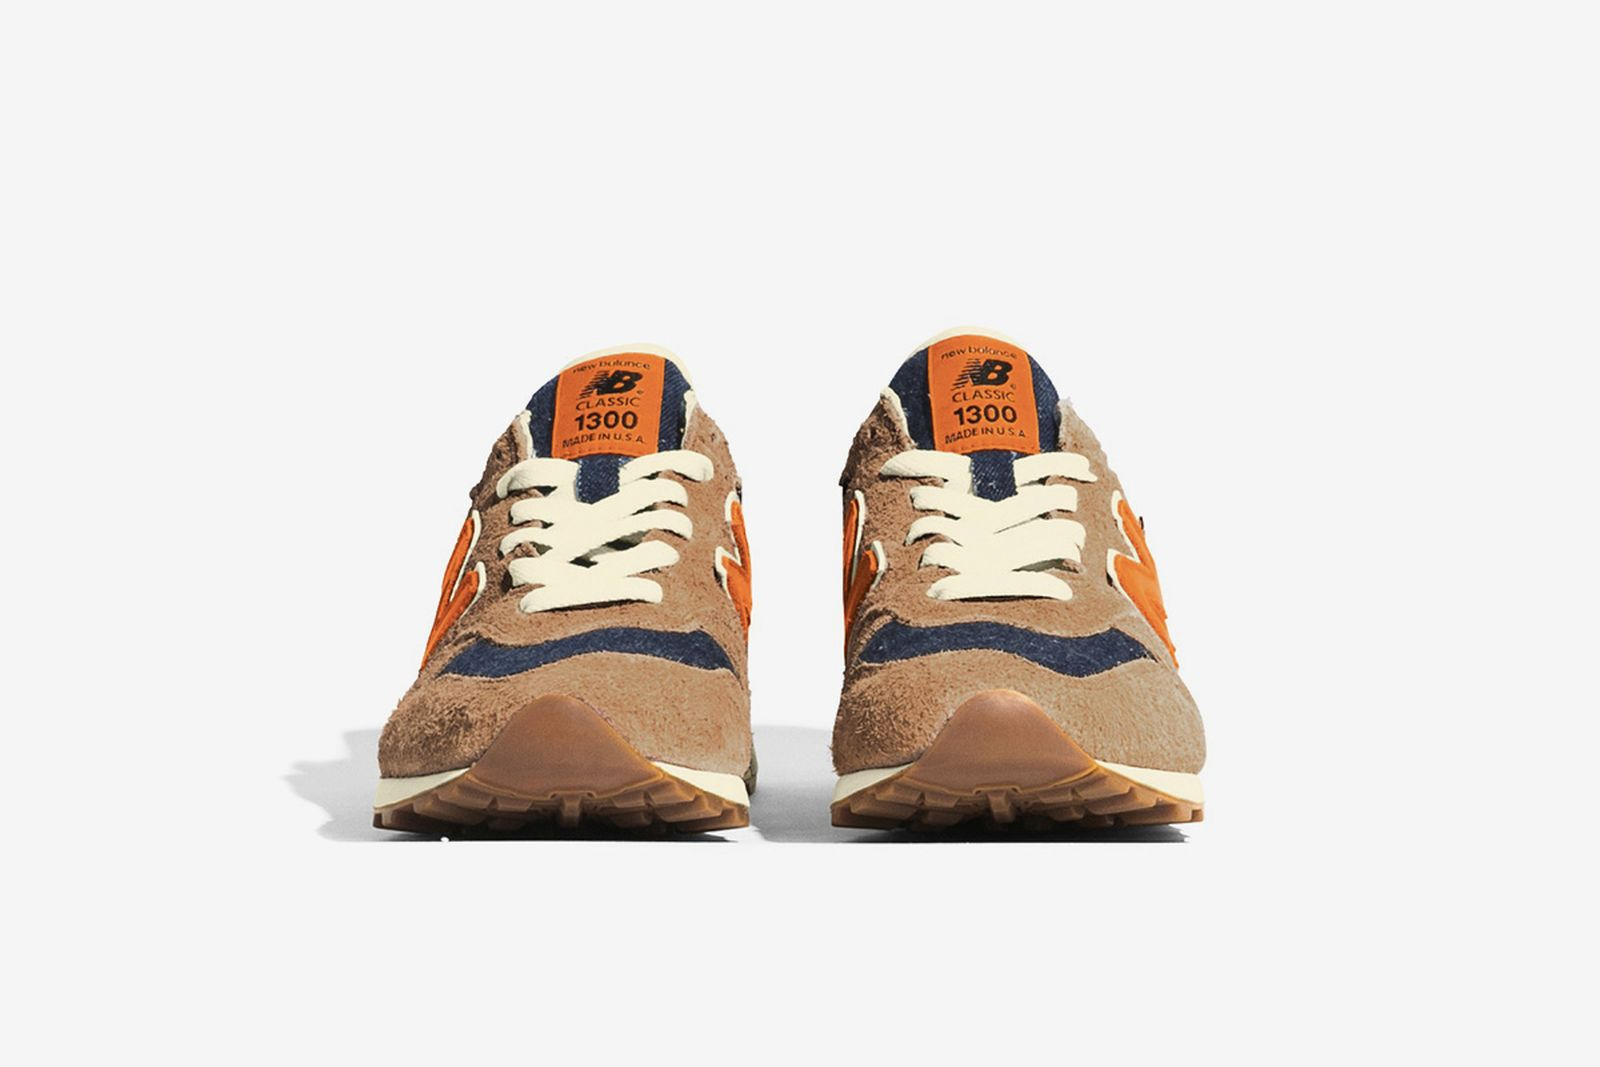 levis-new-balance-1300-release-date-price-02